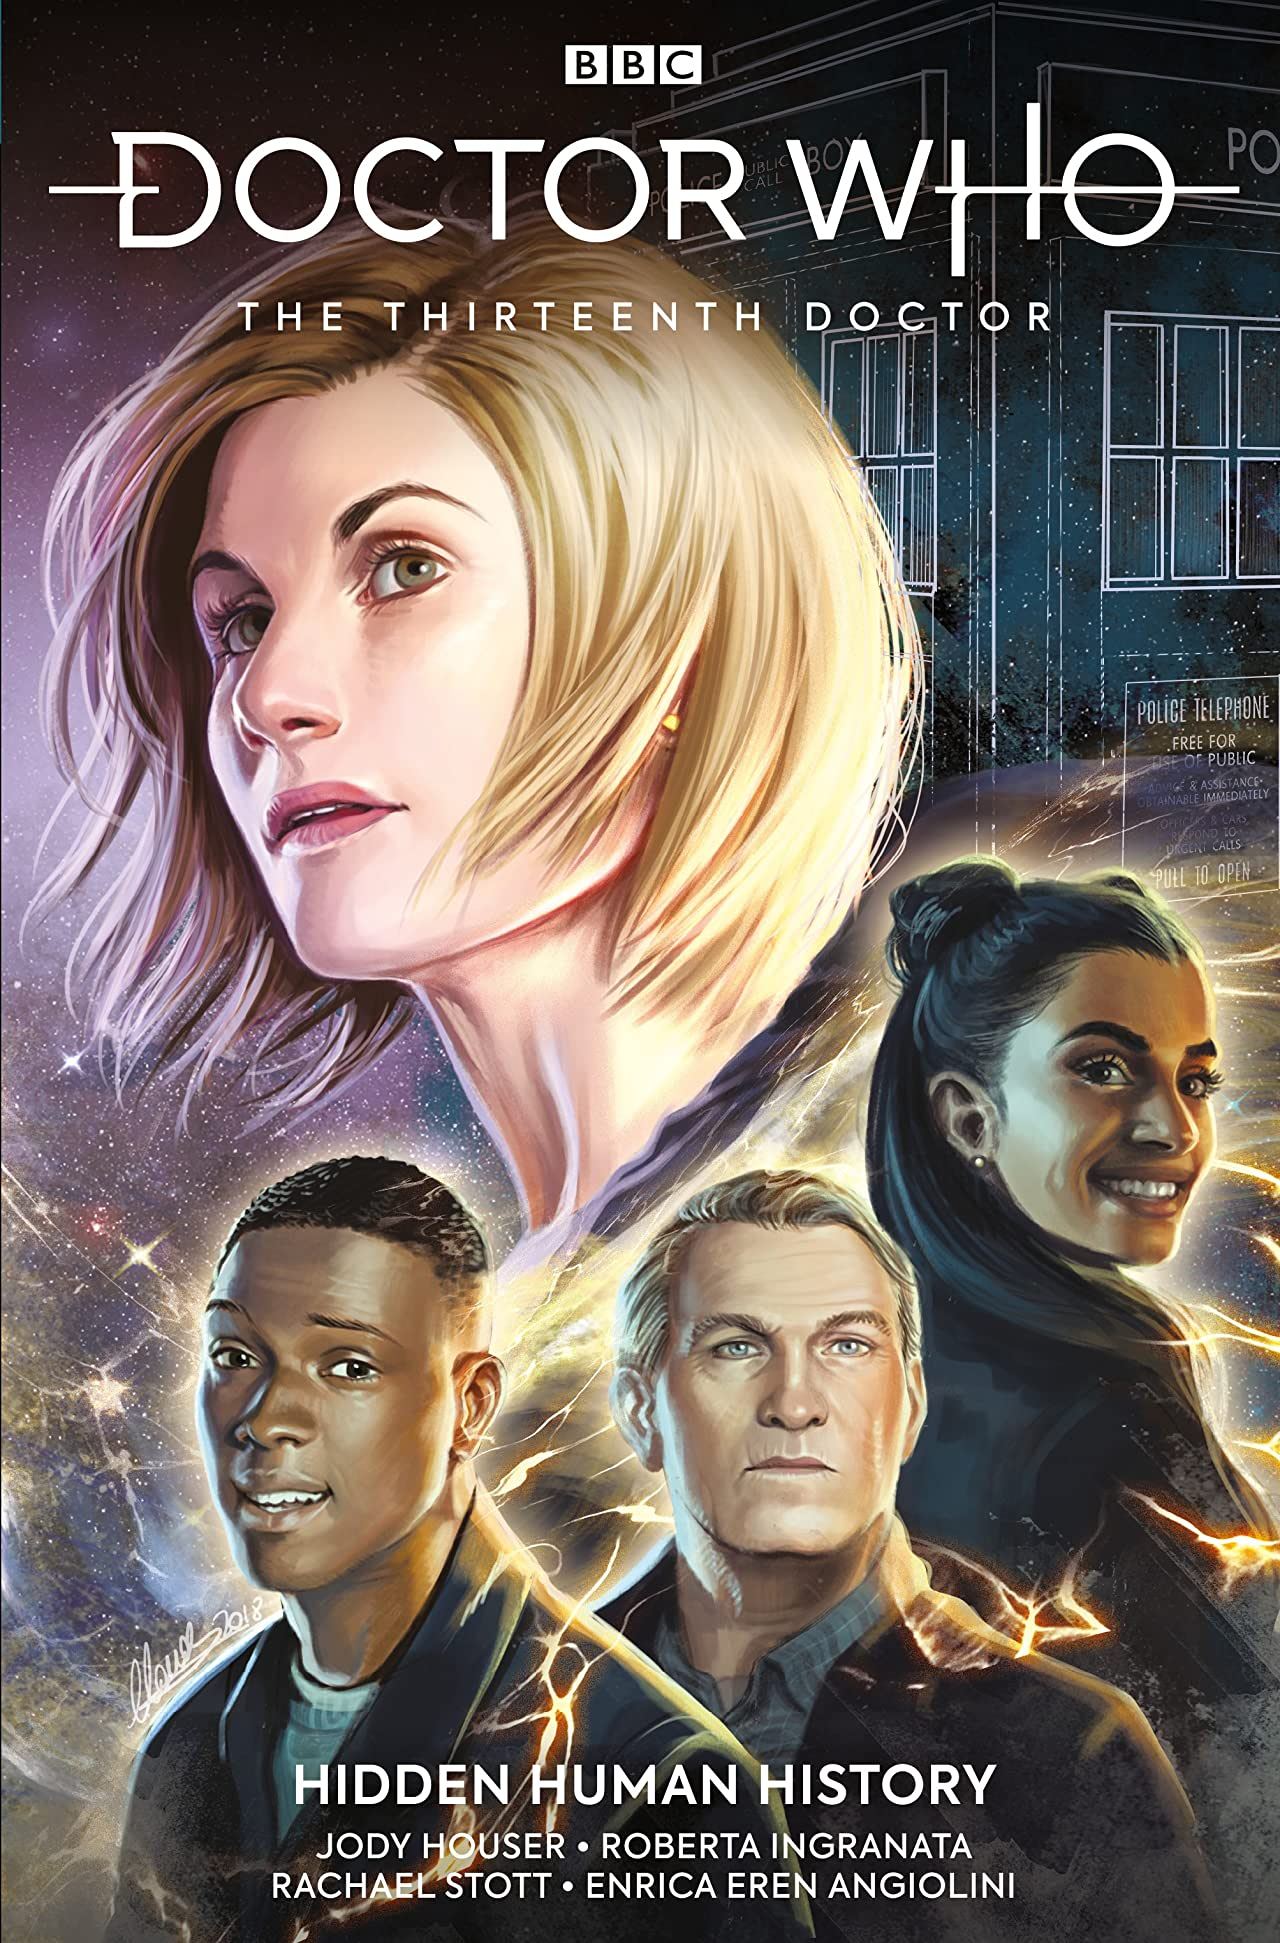 Doctor Who: The Thirteenth Doctor Vol. 2